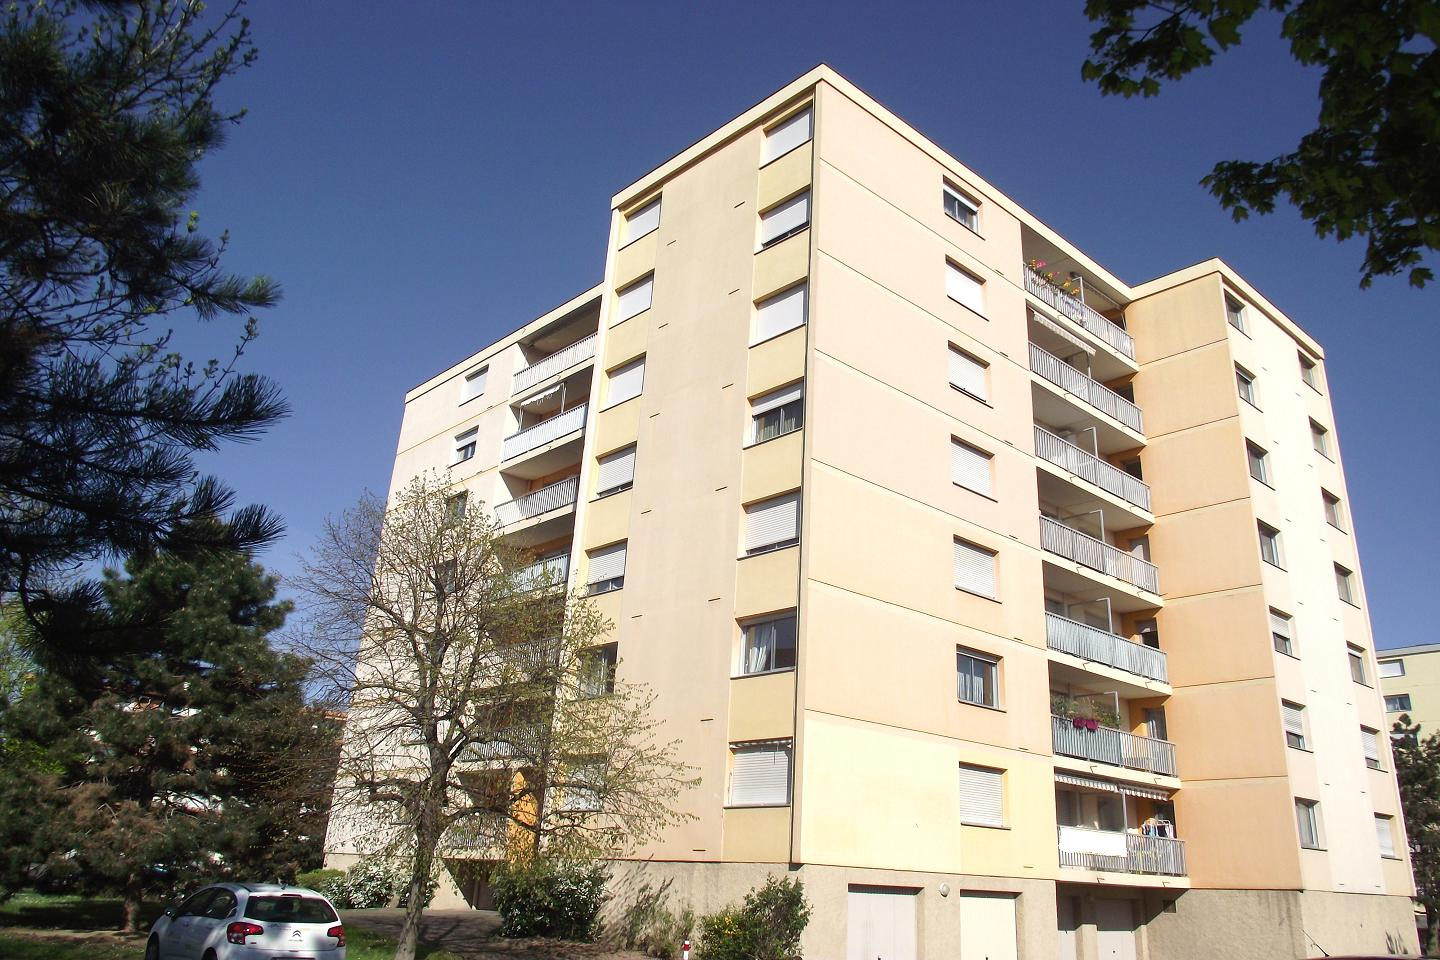 Immobilier strasbourg appartement 70m 111000 for Immobilier logement